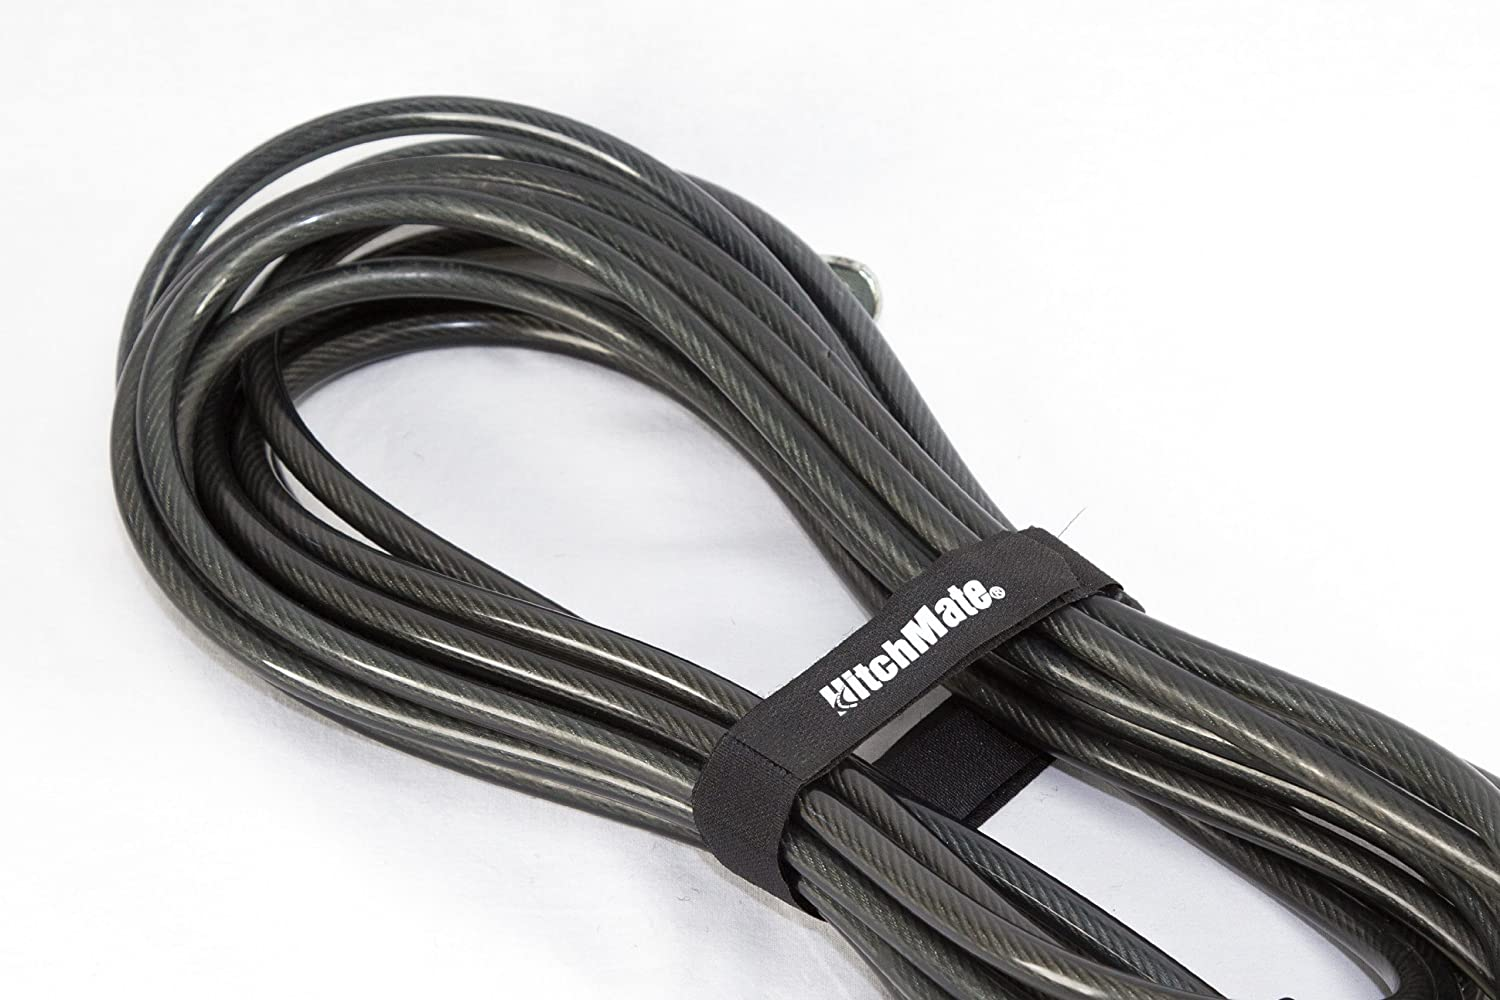 Heininger HitchMate 4083 QuickCinch Black 21 hook and loop Soft Strap, Pack of 4